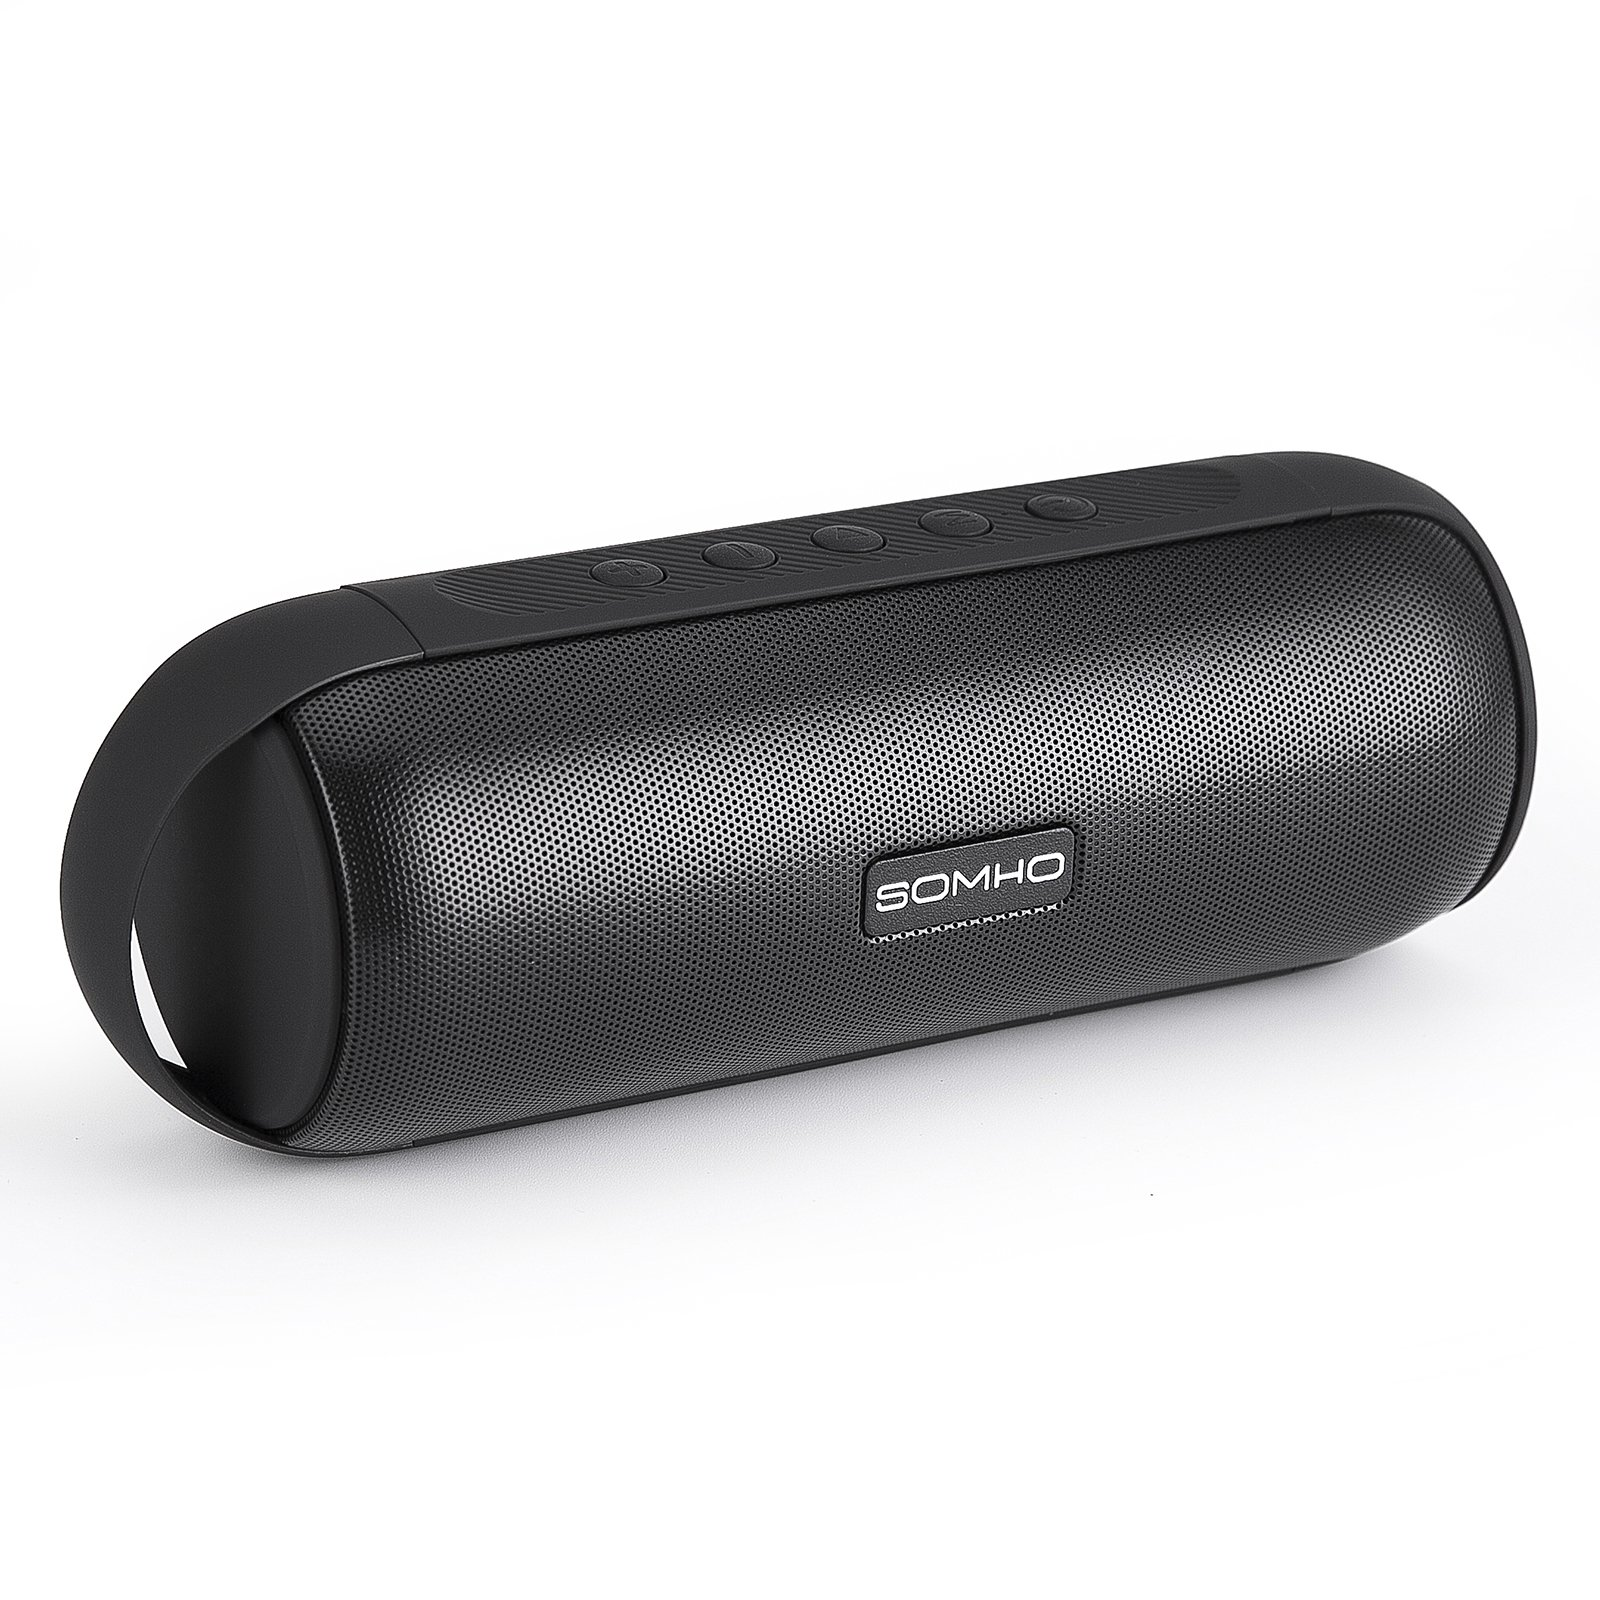 TG Portable Wireless Bluetooth Speaker with Enhanced Bass, HD Sound, Handsfree Calling, TF Card Slot and FM Radio,for Iphone , Andoid , Tablet Computer Loudspeaker House Party SOMHO S327 BLACK